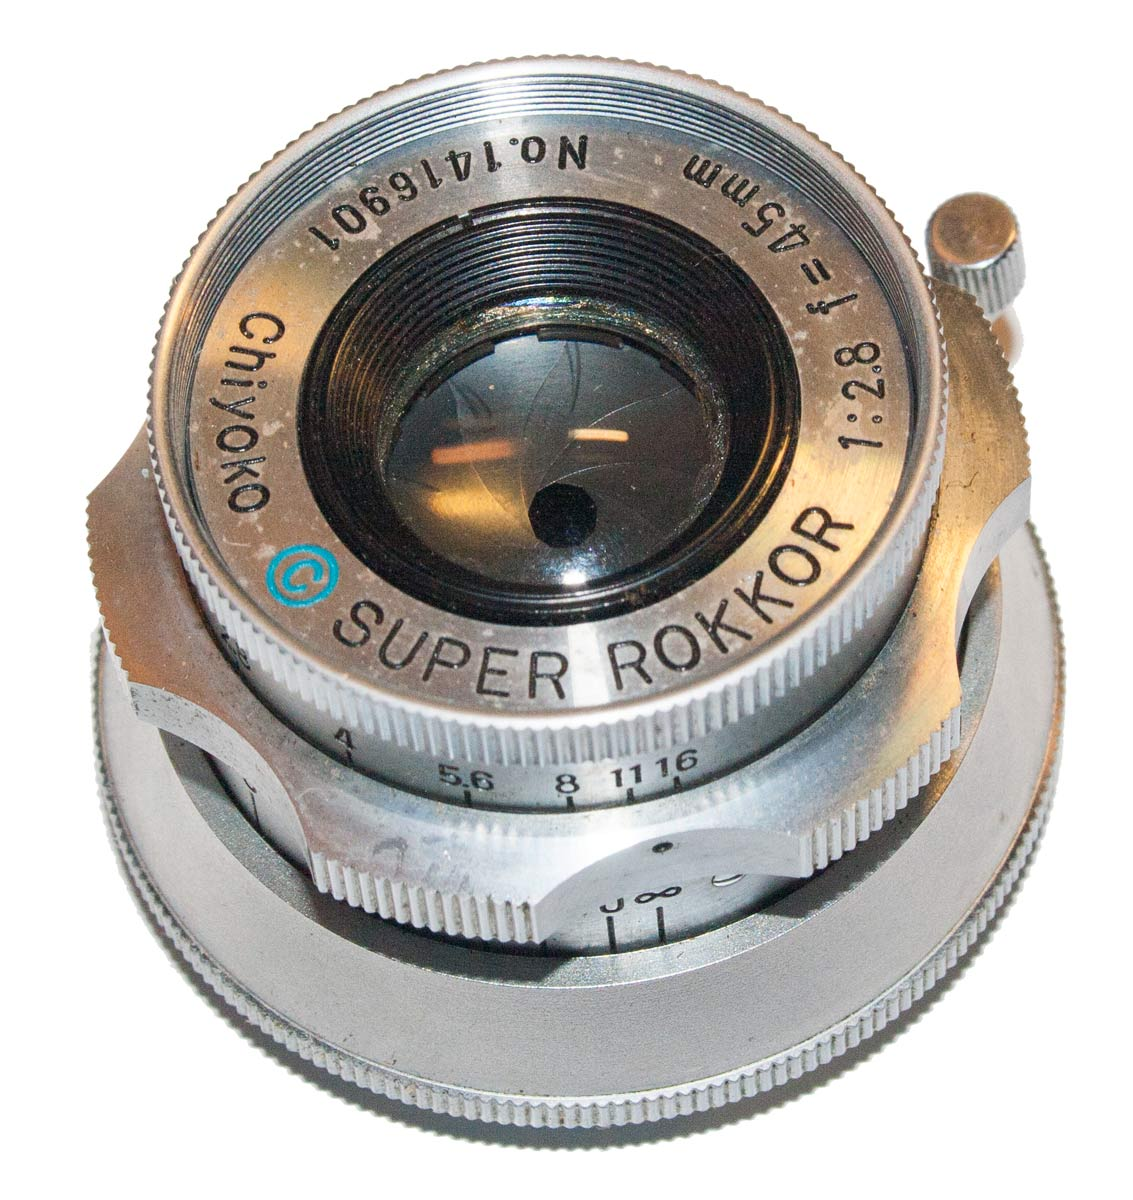 Super Rokkor 45mm f/2.8